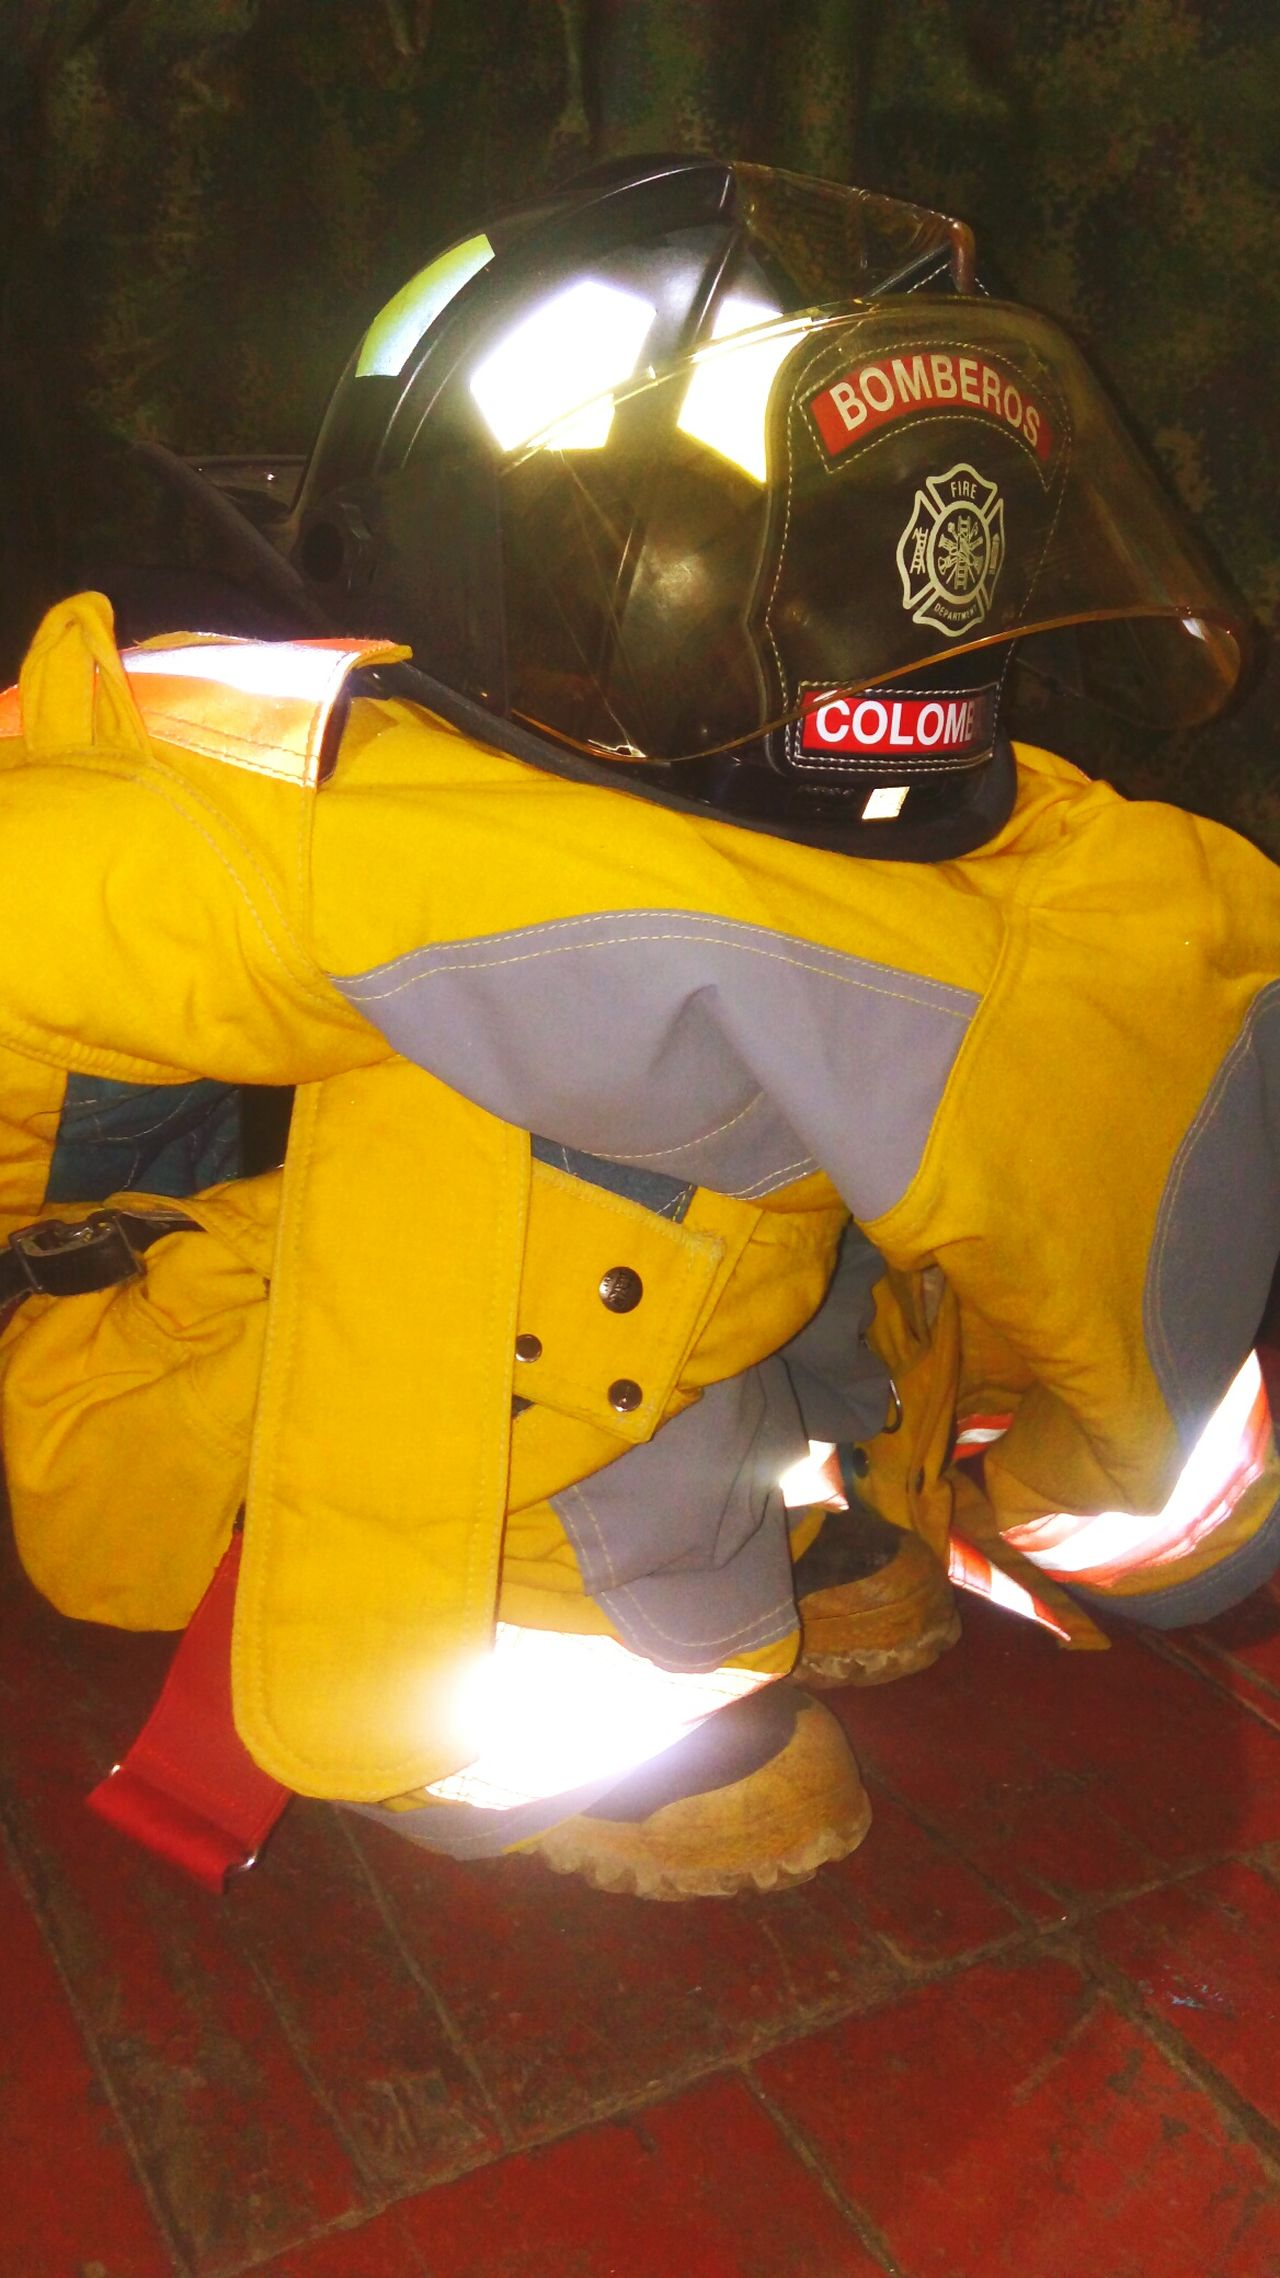 Fireequipment Emergency Services Firedepartment PPE Loveforwork Lifestyle :)